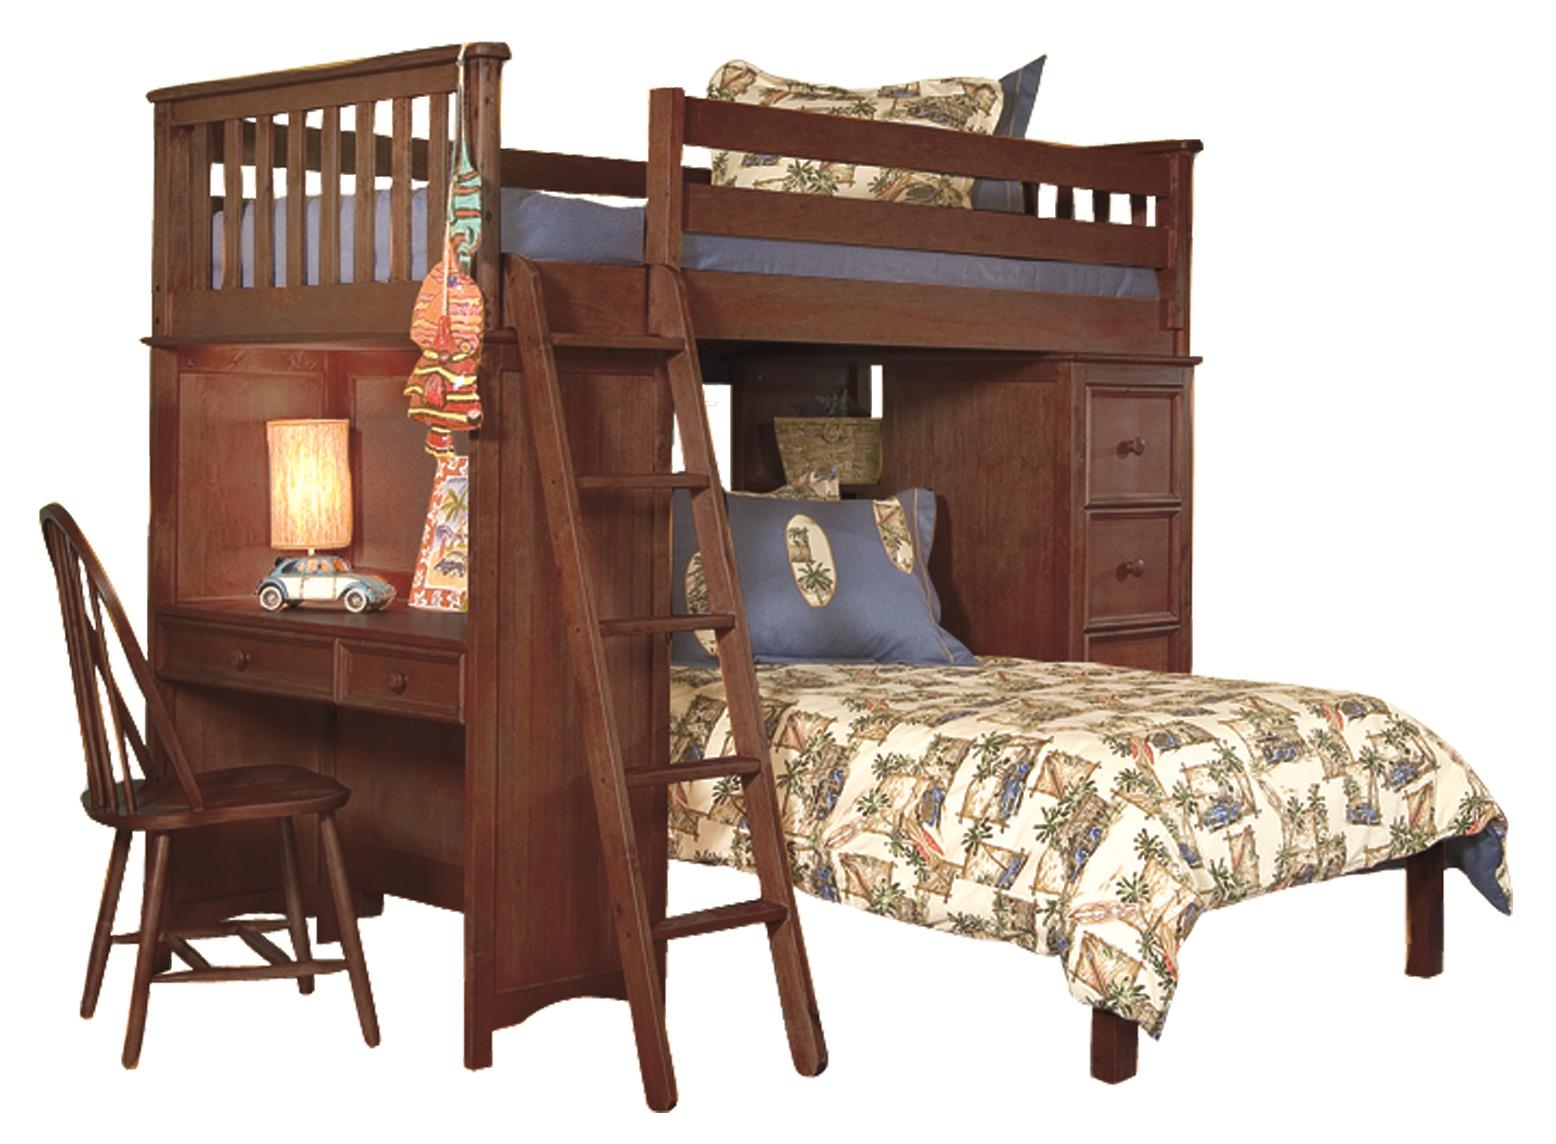 Bolton Mulberry Mulberry Twin Bunk Bed - Item Number: 475860500